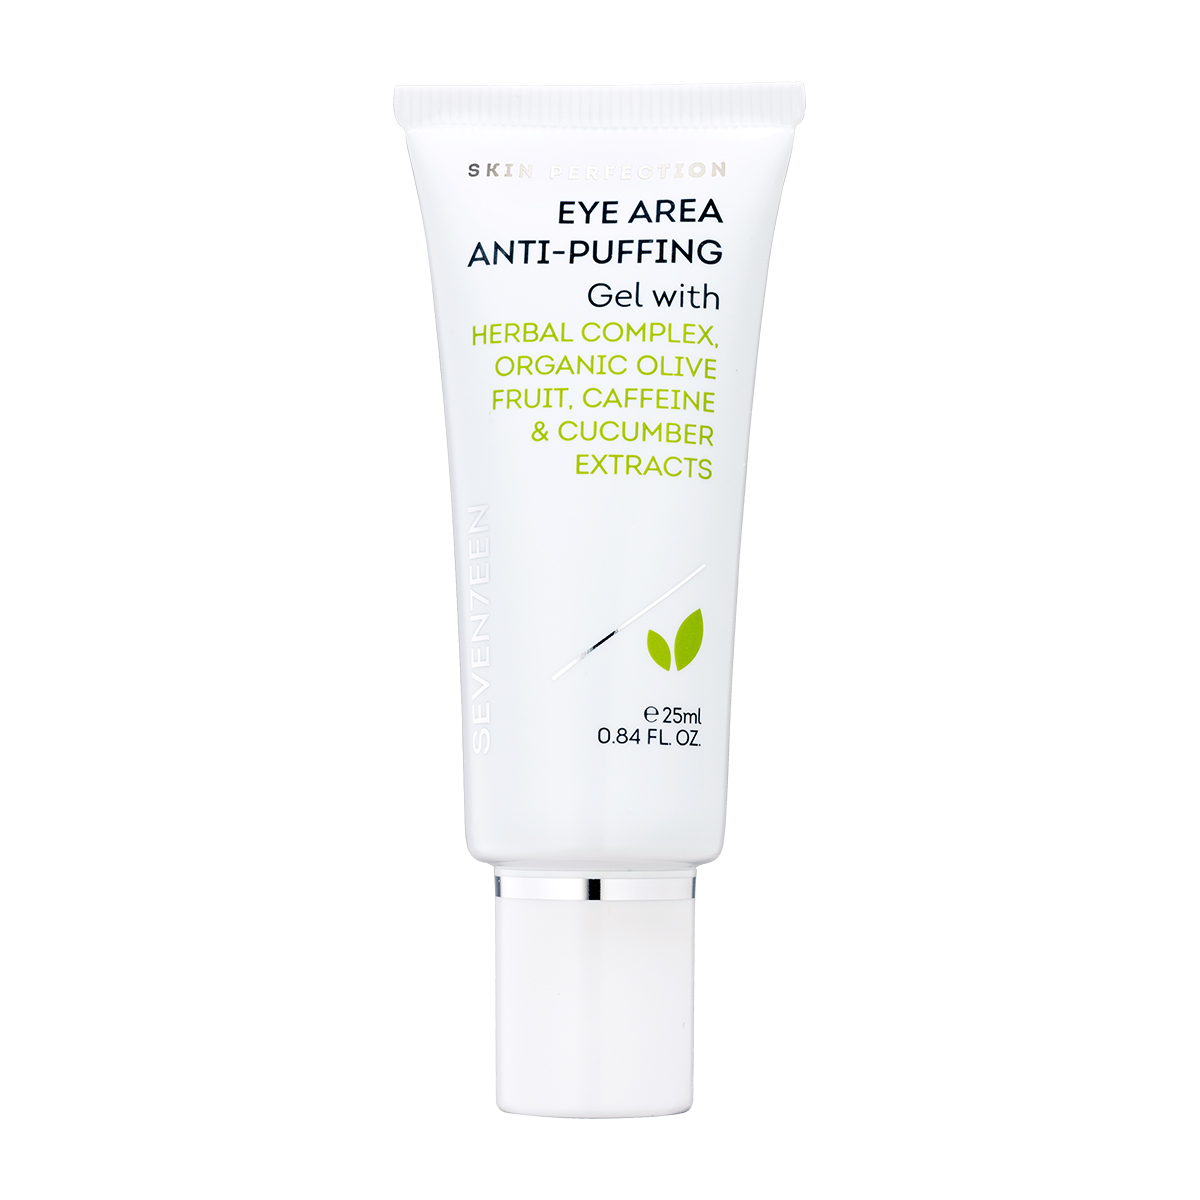 Eye Area Anti-Puffing Gel